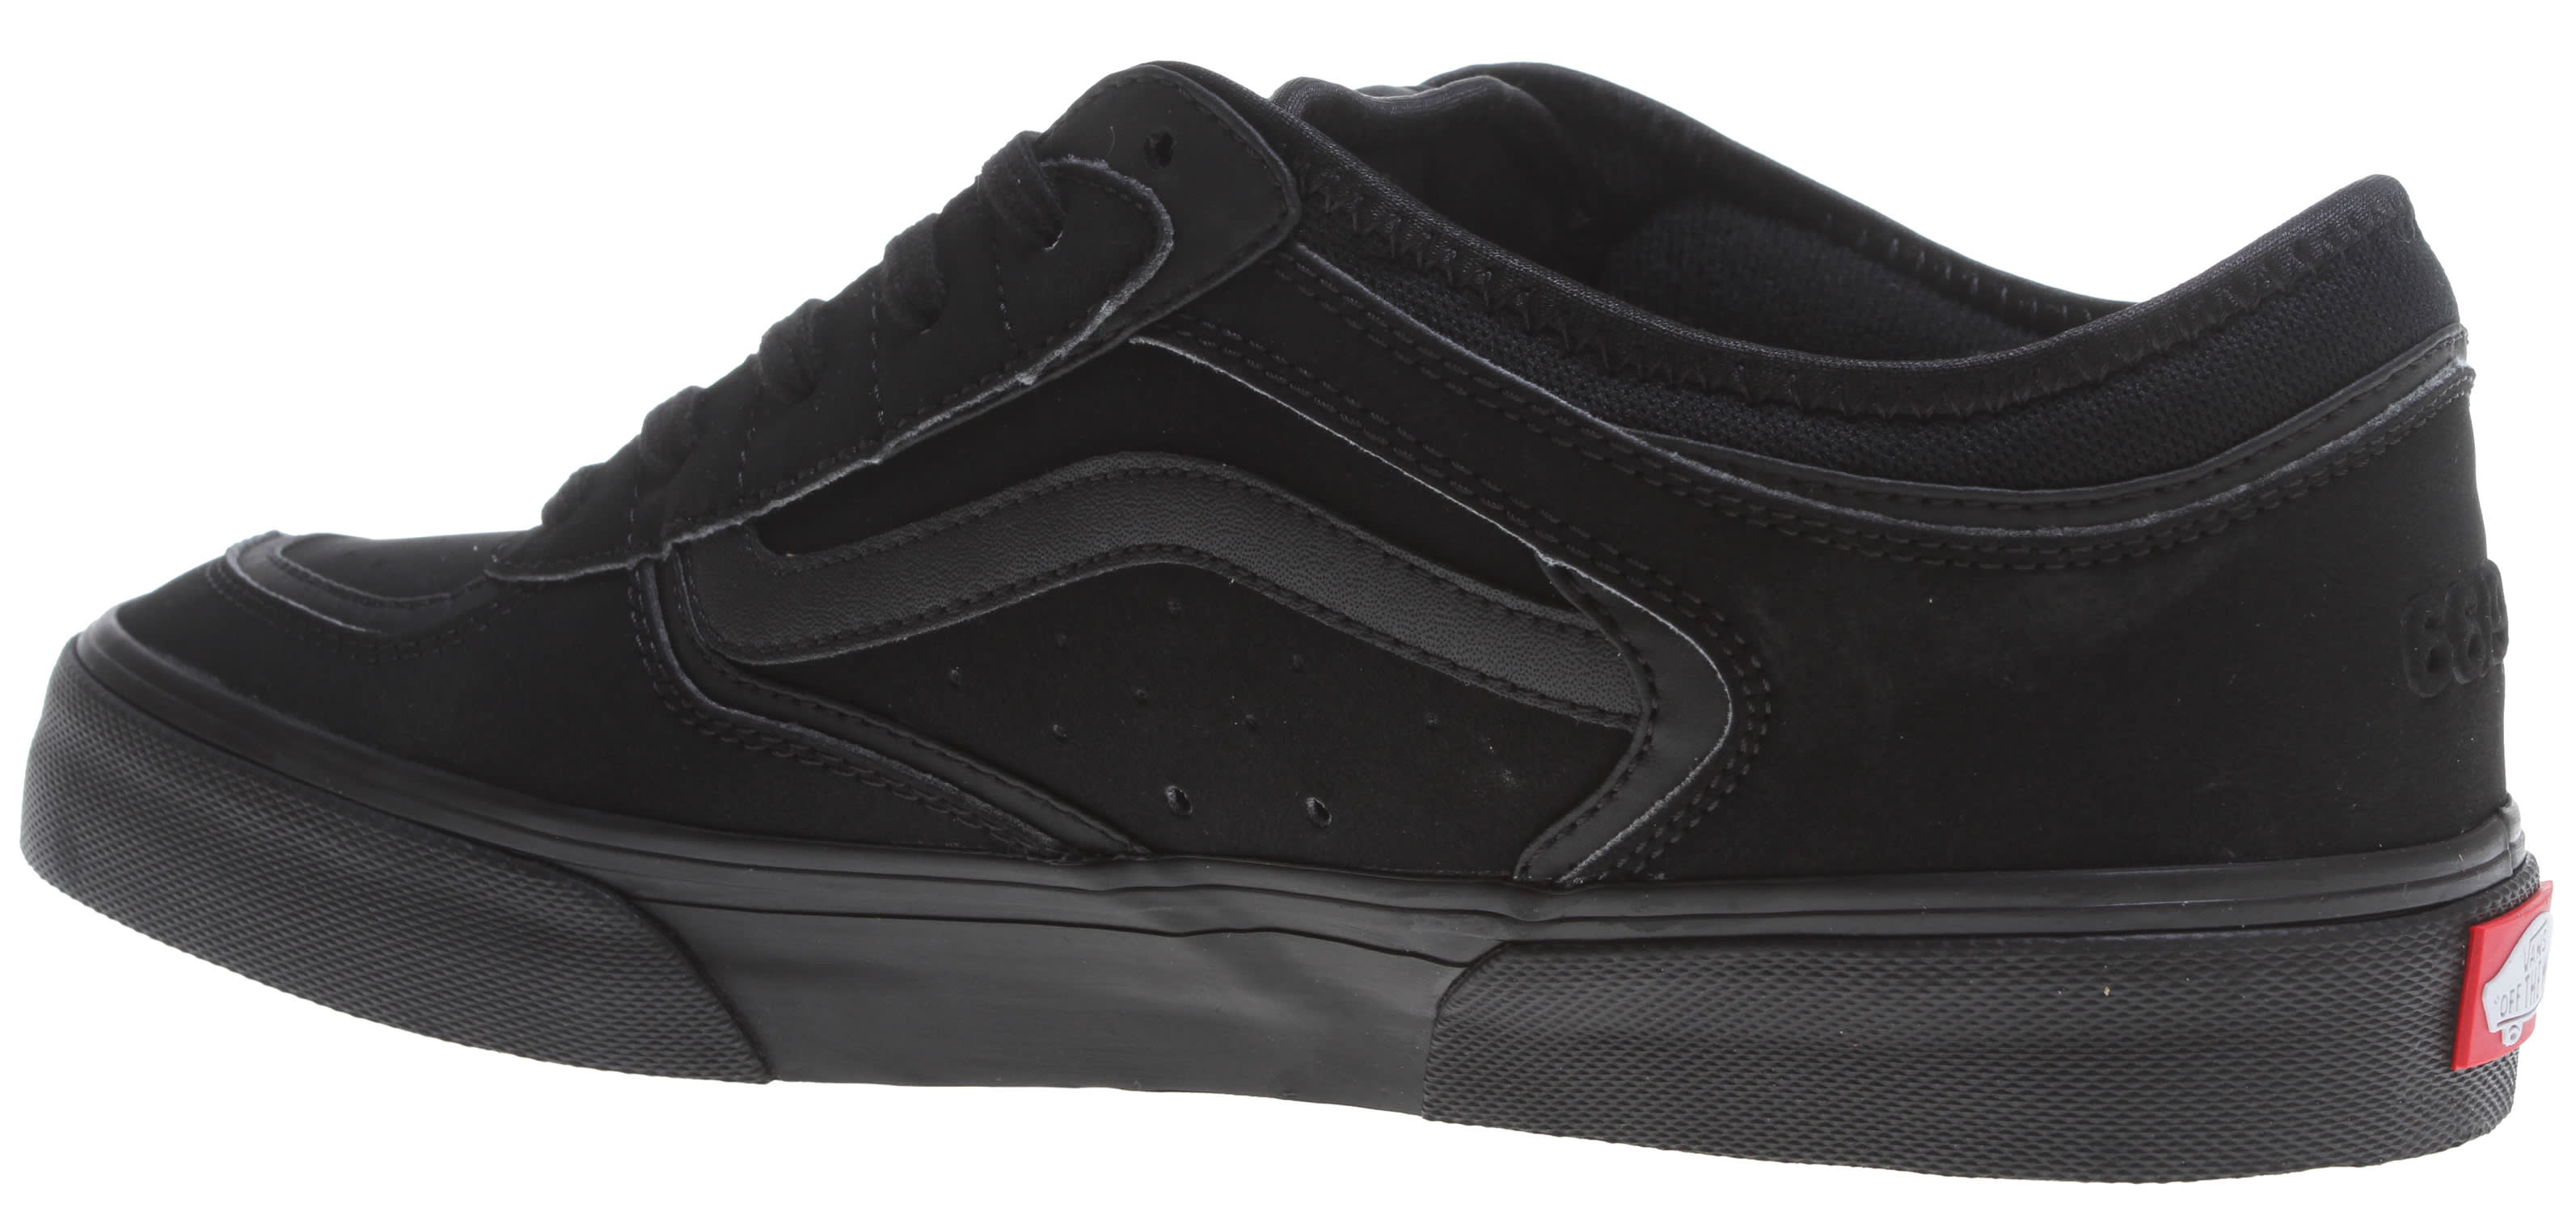 On Sale Vans Rowley Pro Skate Shoes up to 55% off